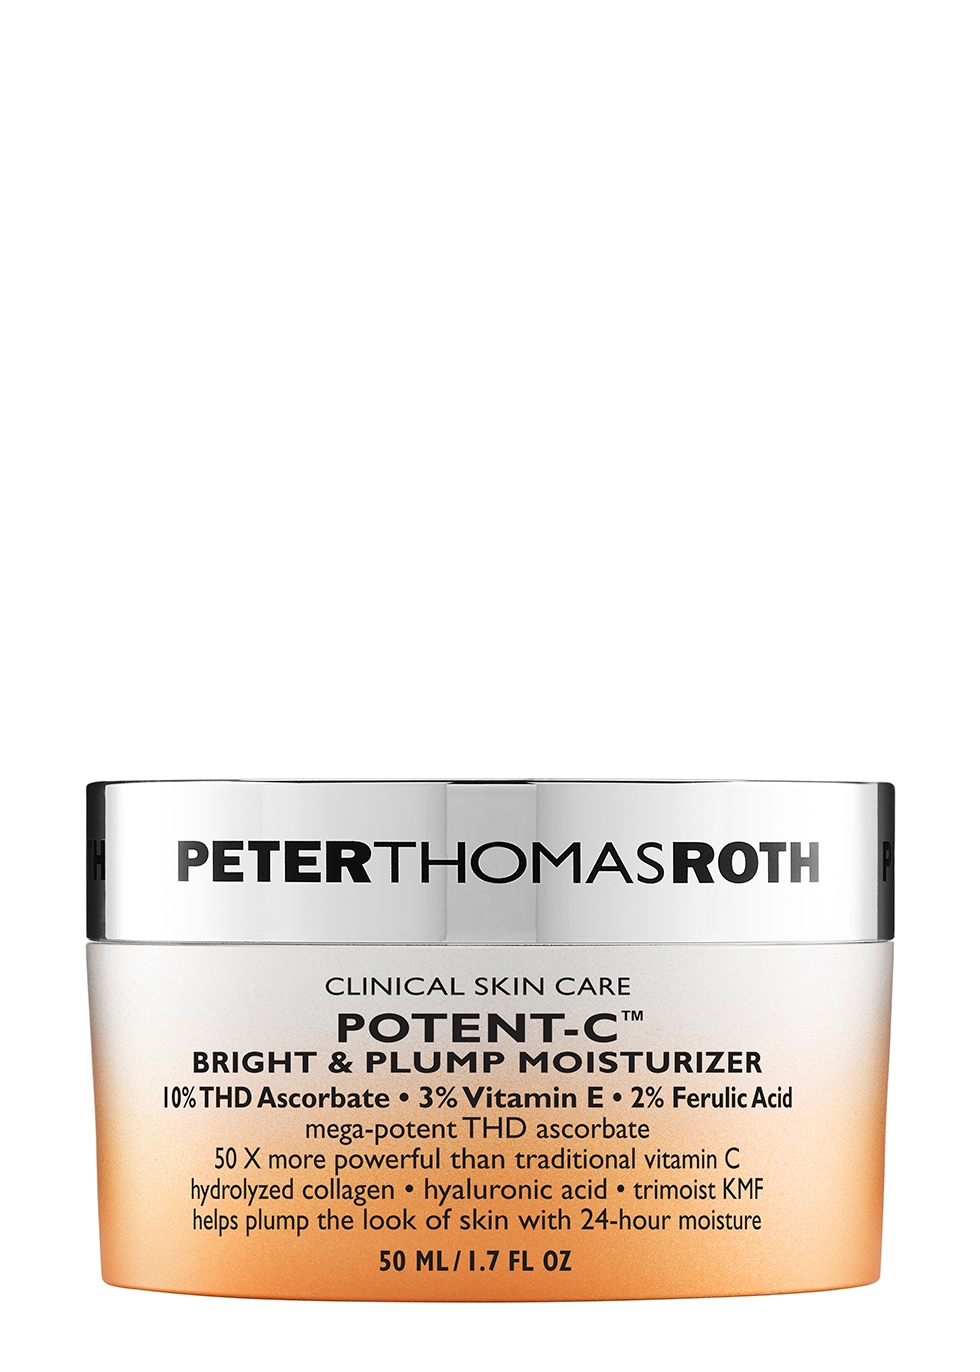 Potent-C™ Bright & Plump Moisturizer 50ml